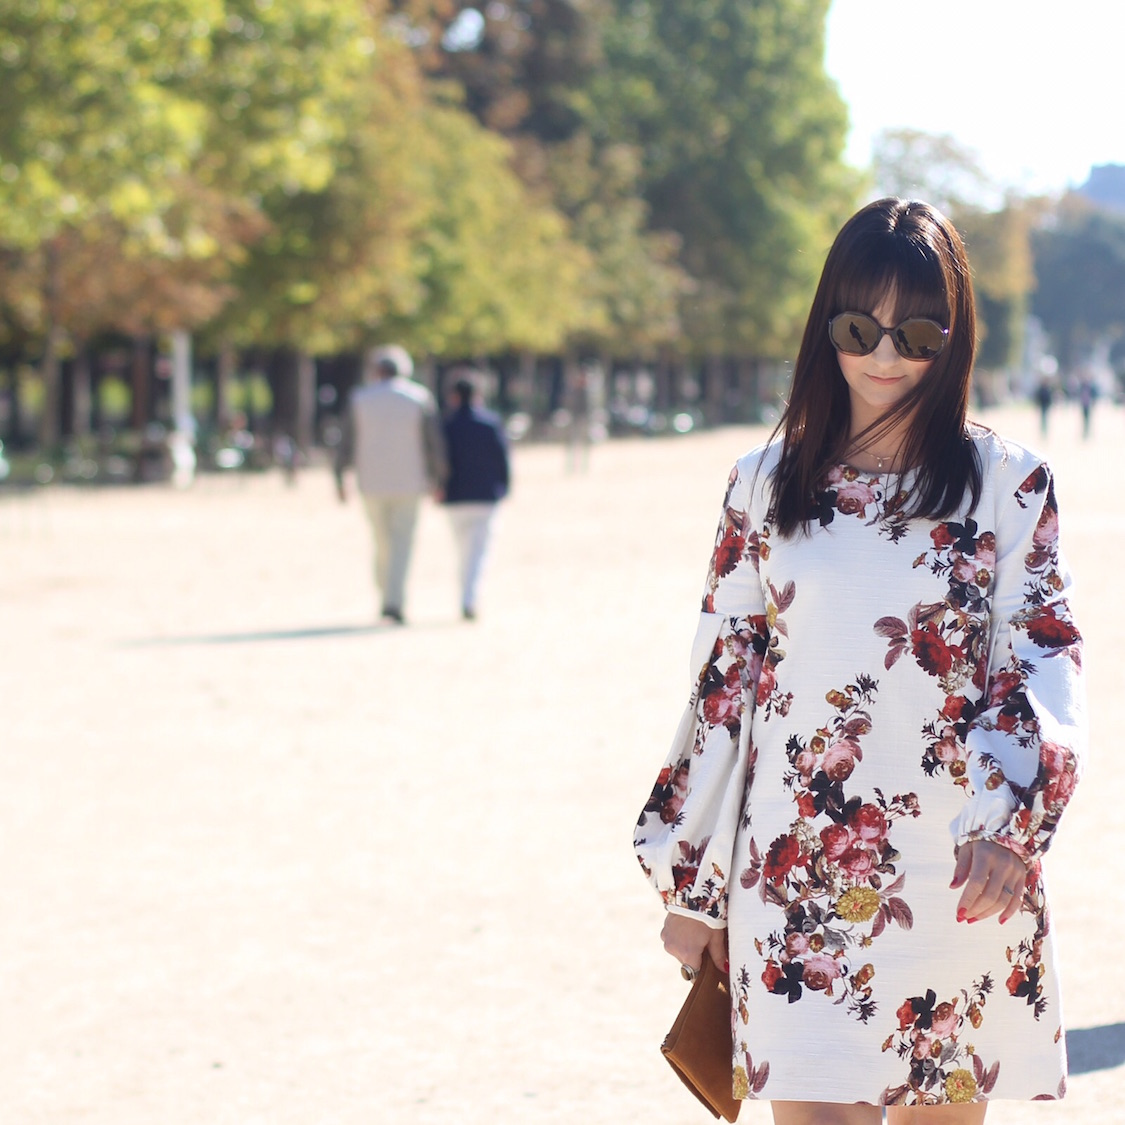 primeiro-dia-no-paris-fashion-week-look-do-dia-danielle-noce-1